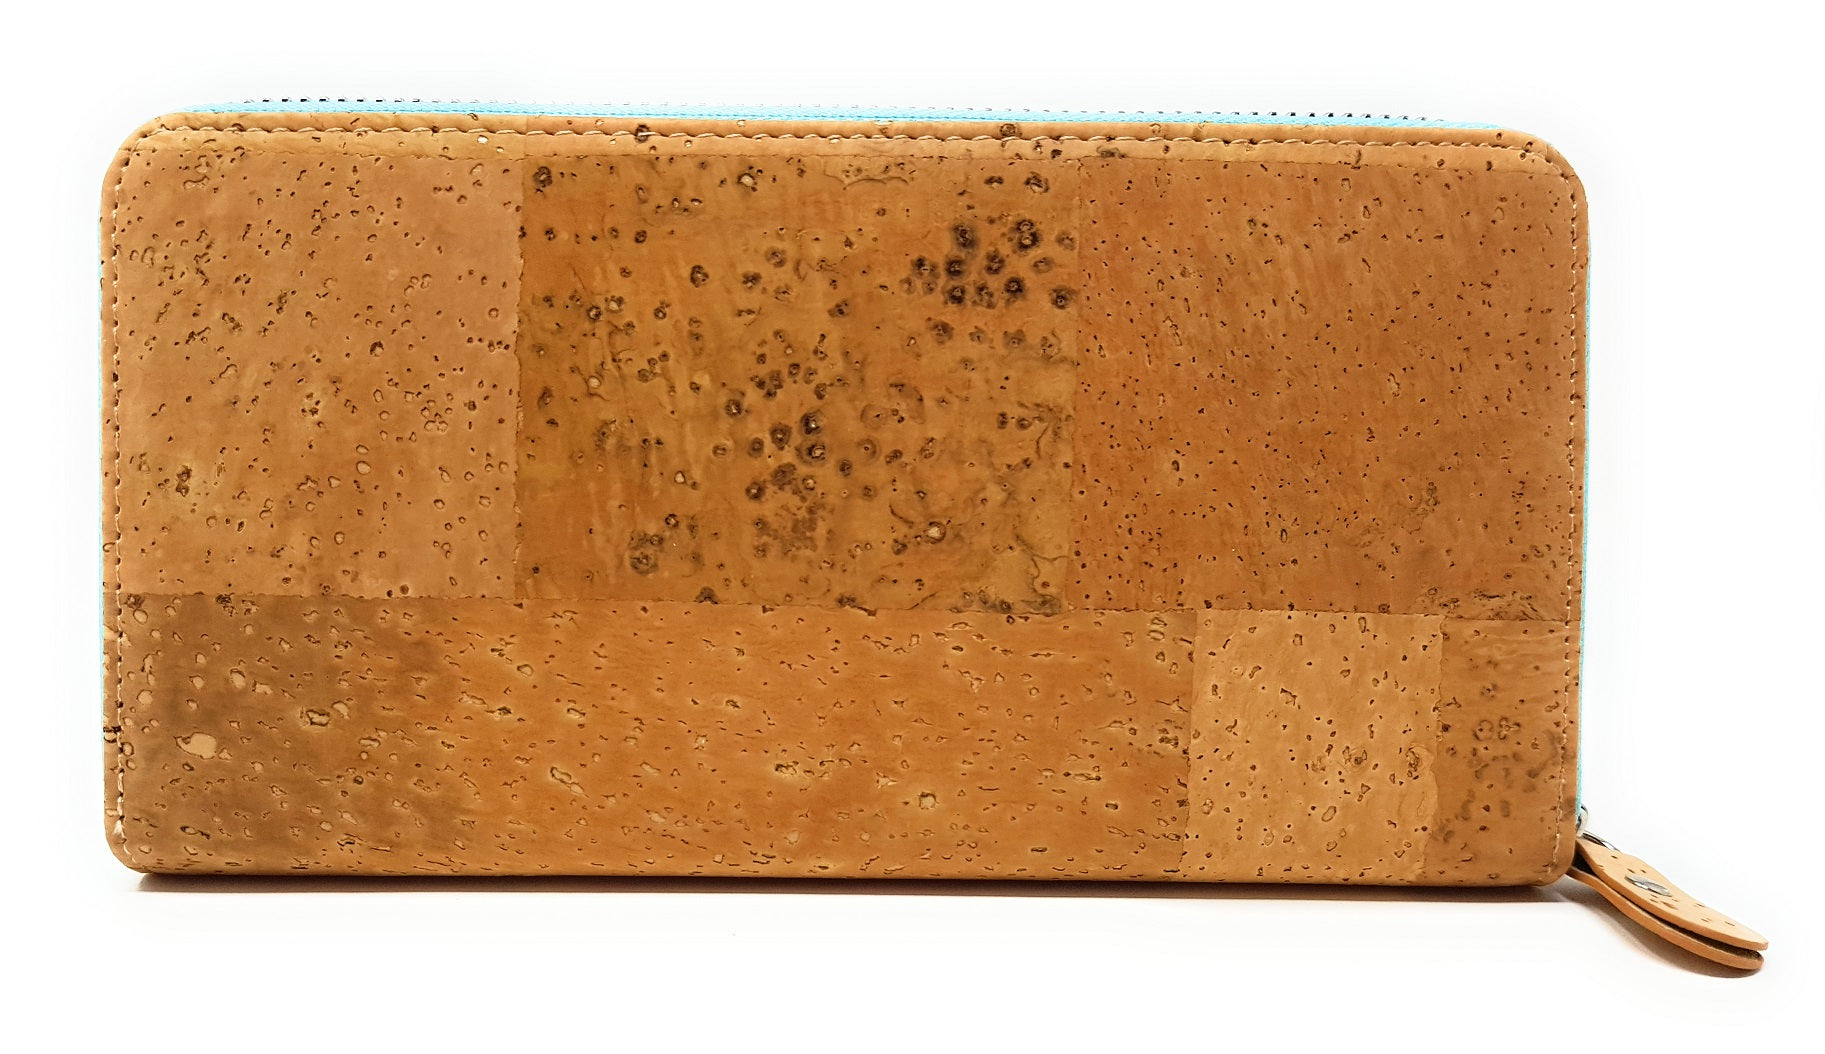 Vegan Purses Wallets (Unloved)